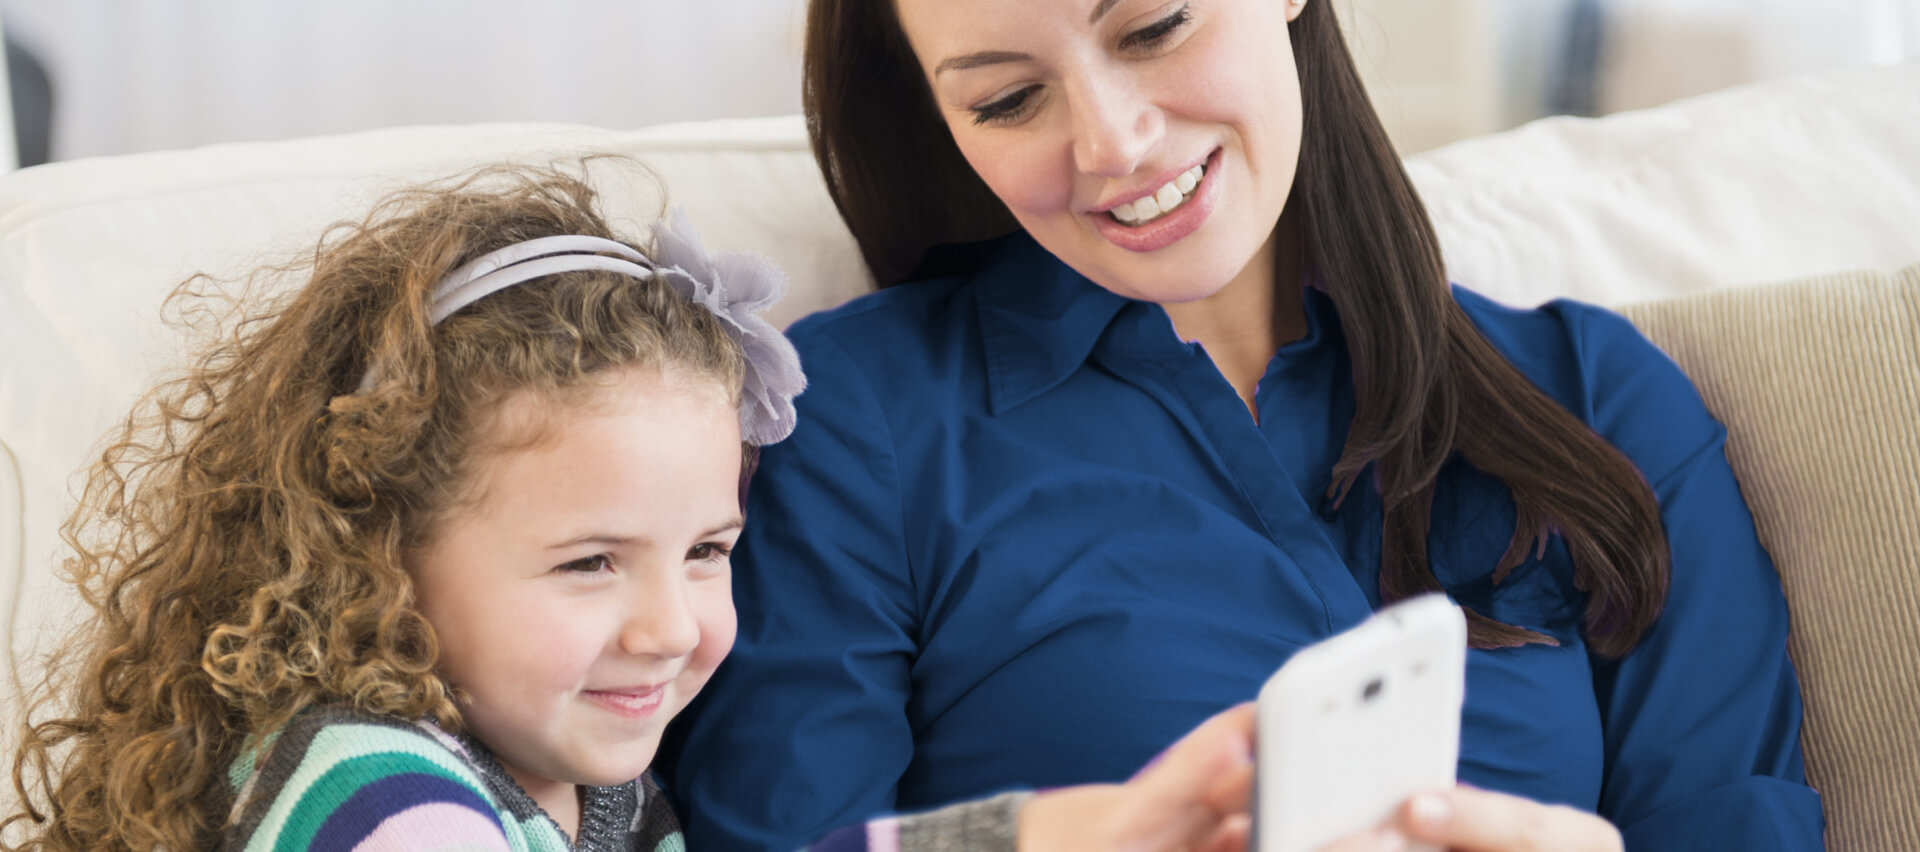 Woman and child playing on smartphone